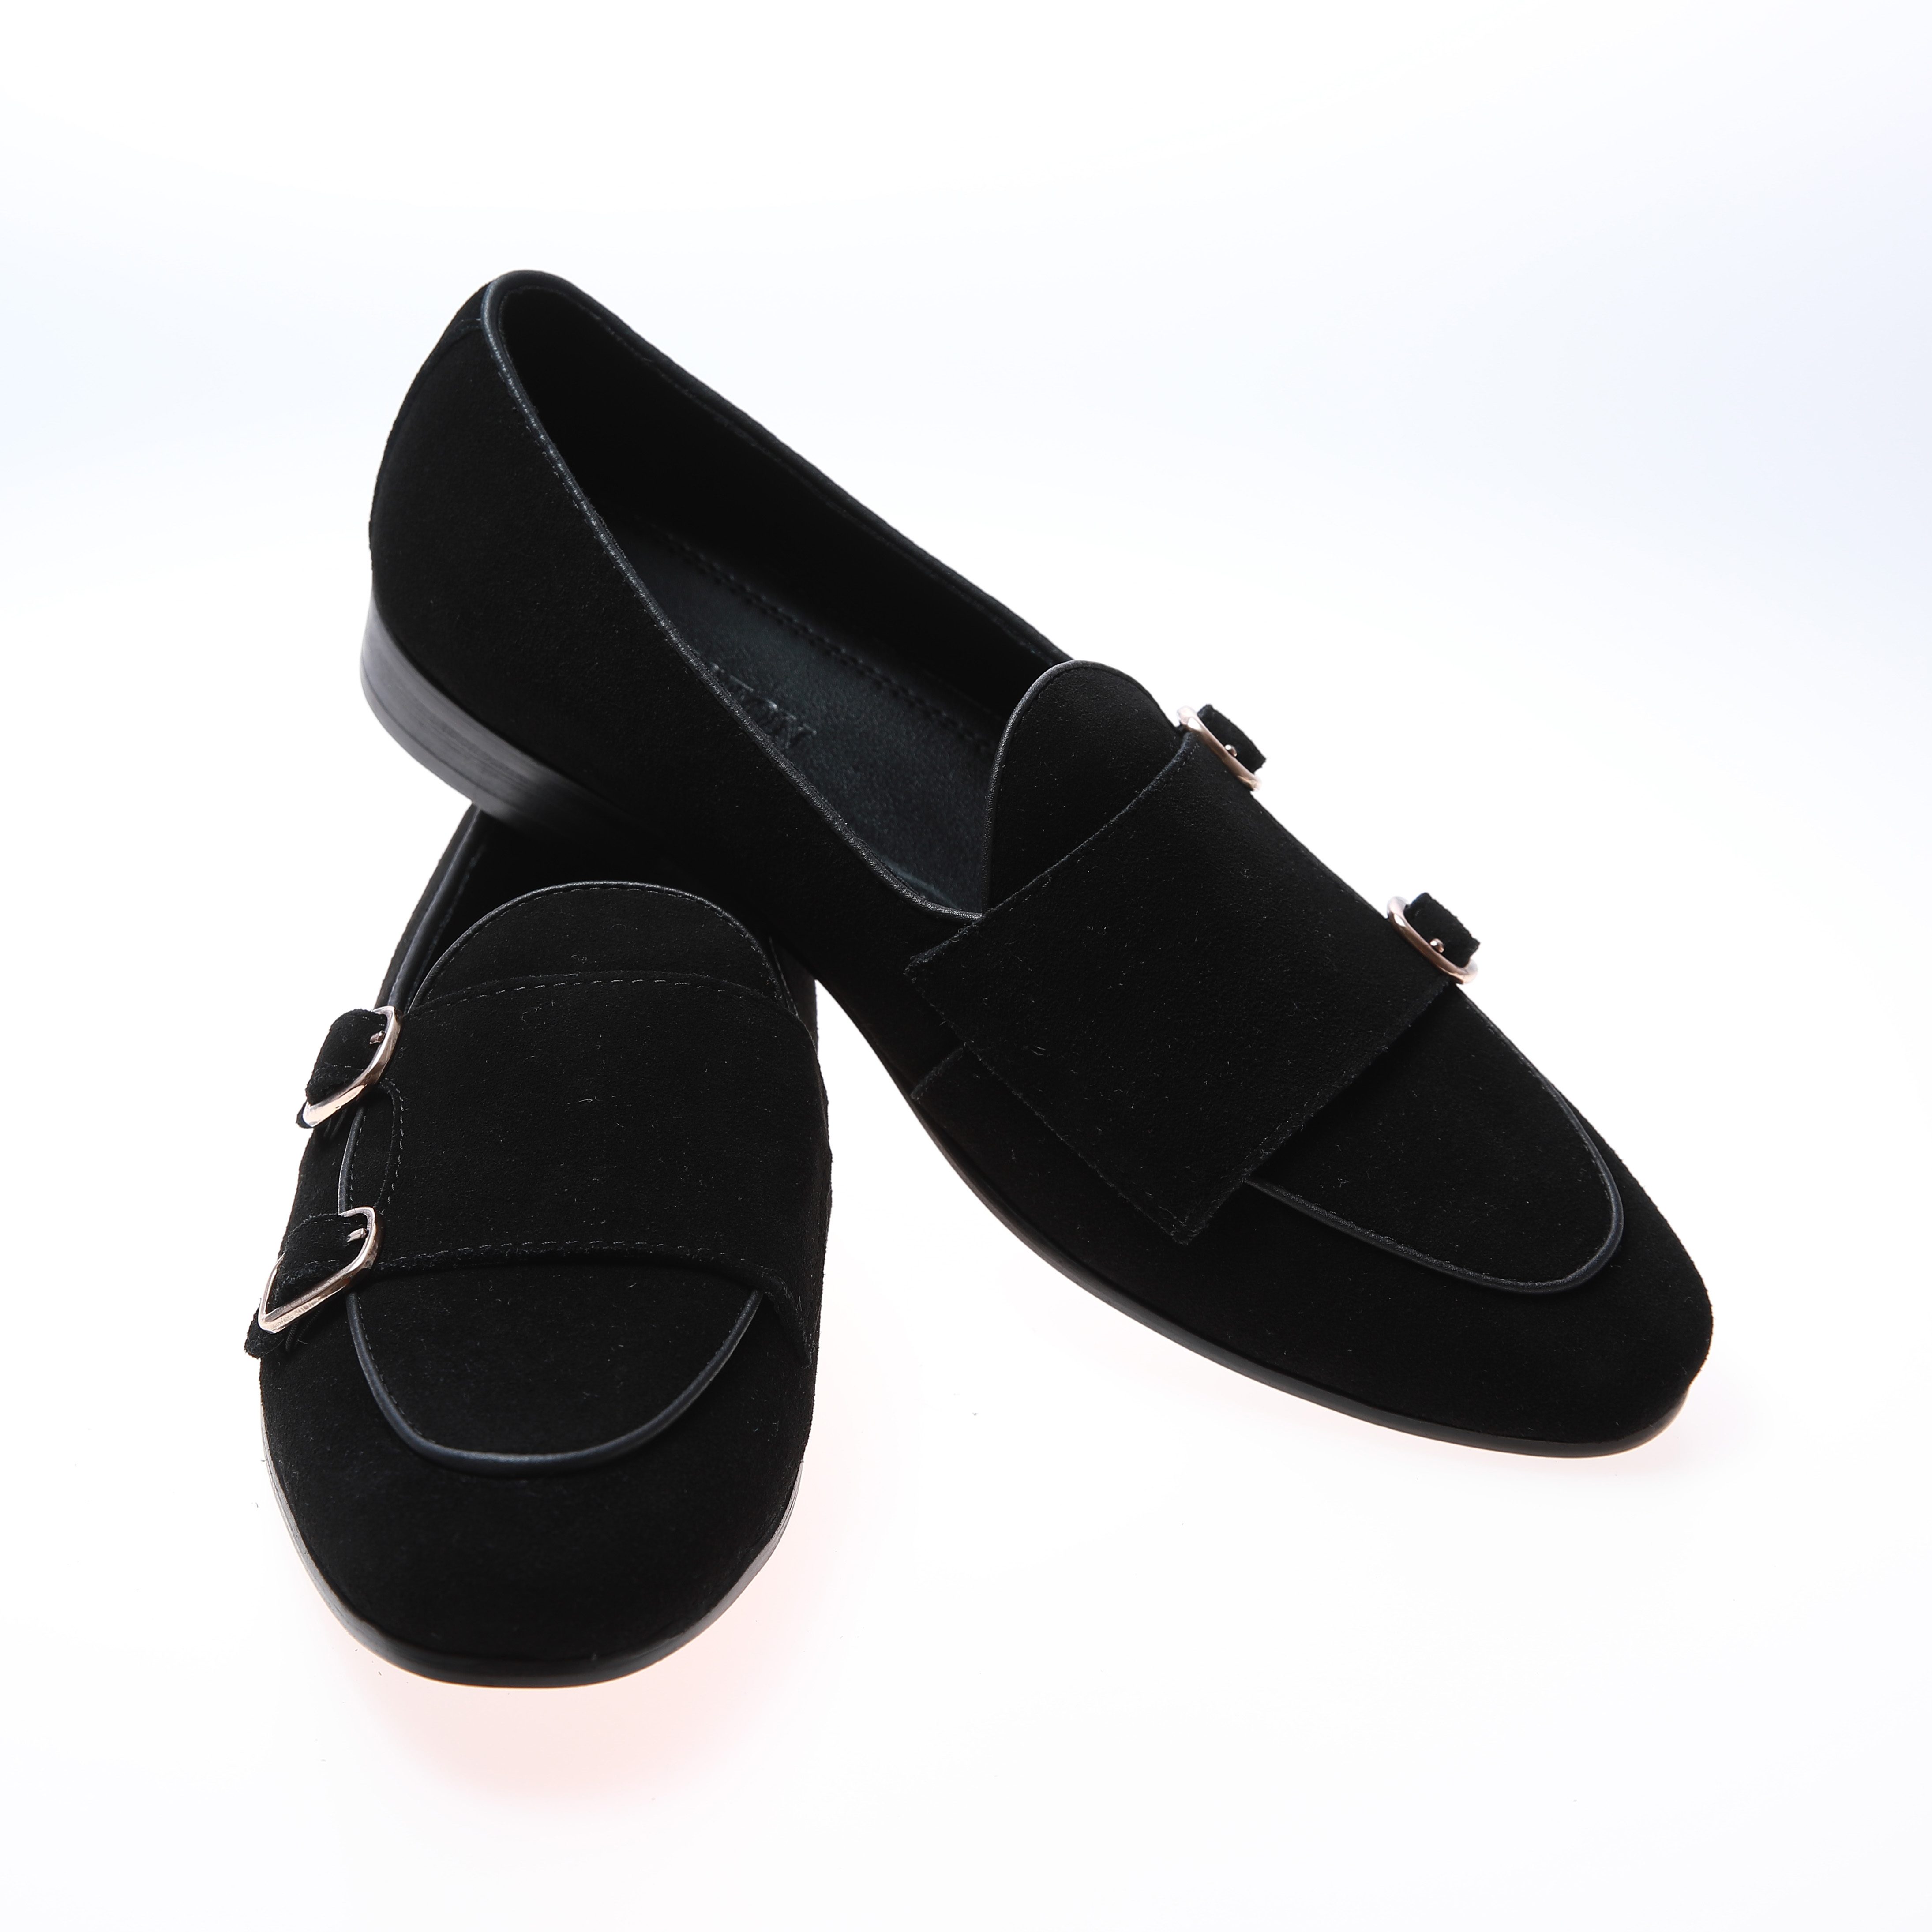 2020 new product small leather shoes, reverse suede, casual, pointed and breathable shoes for men, abrasive leather shoes for me